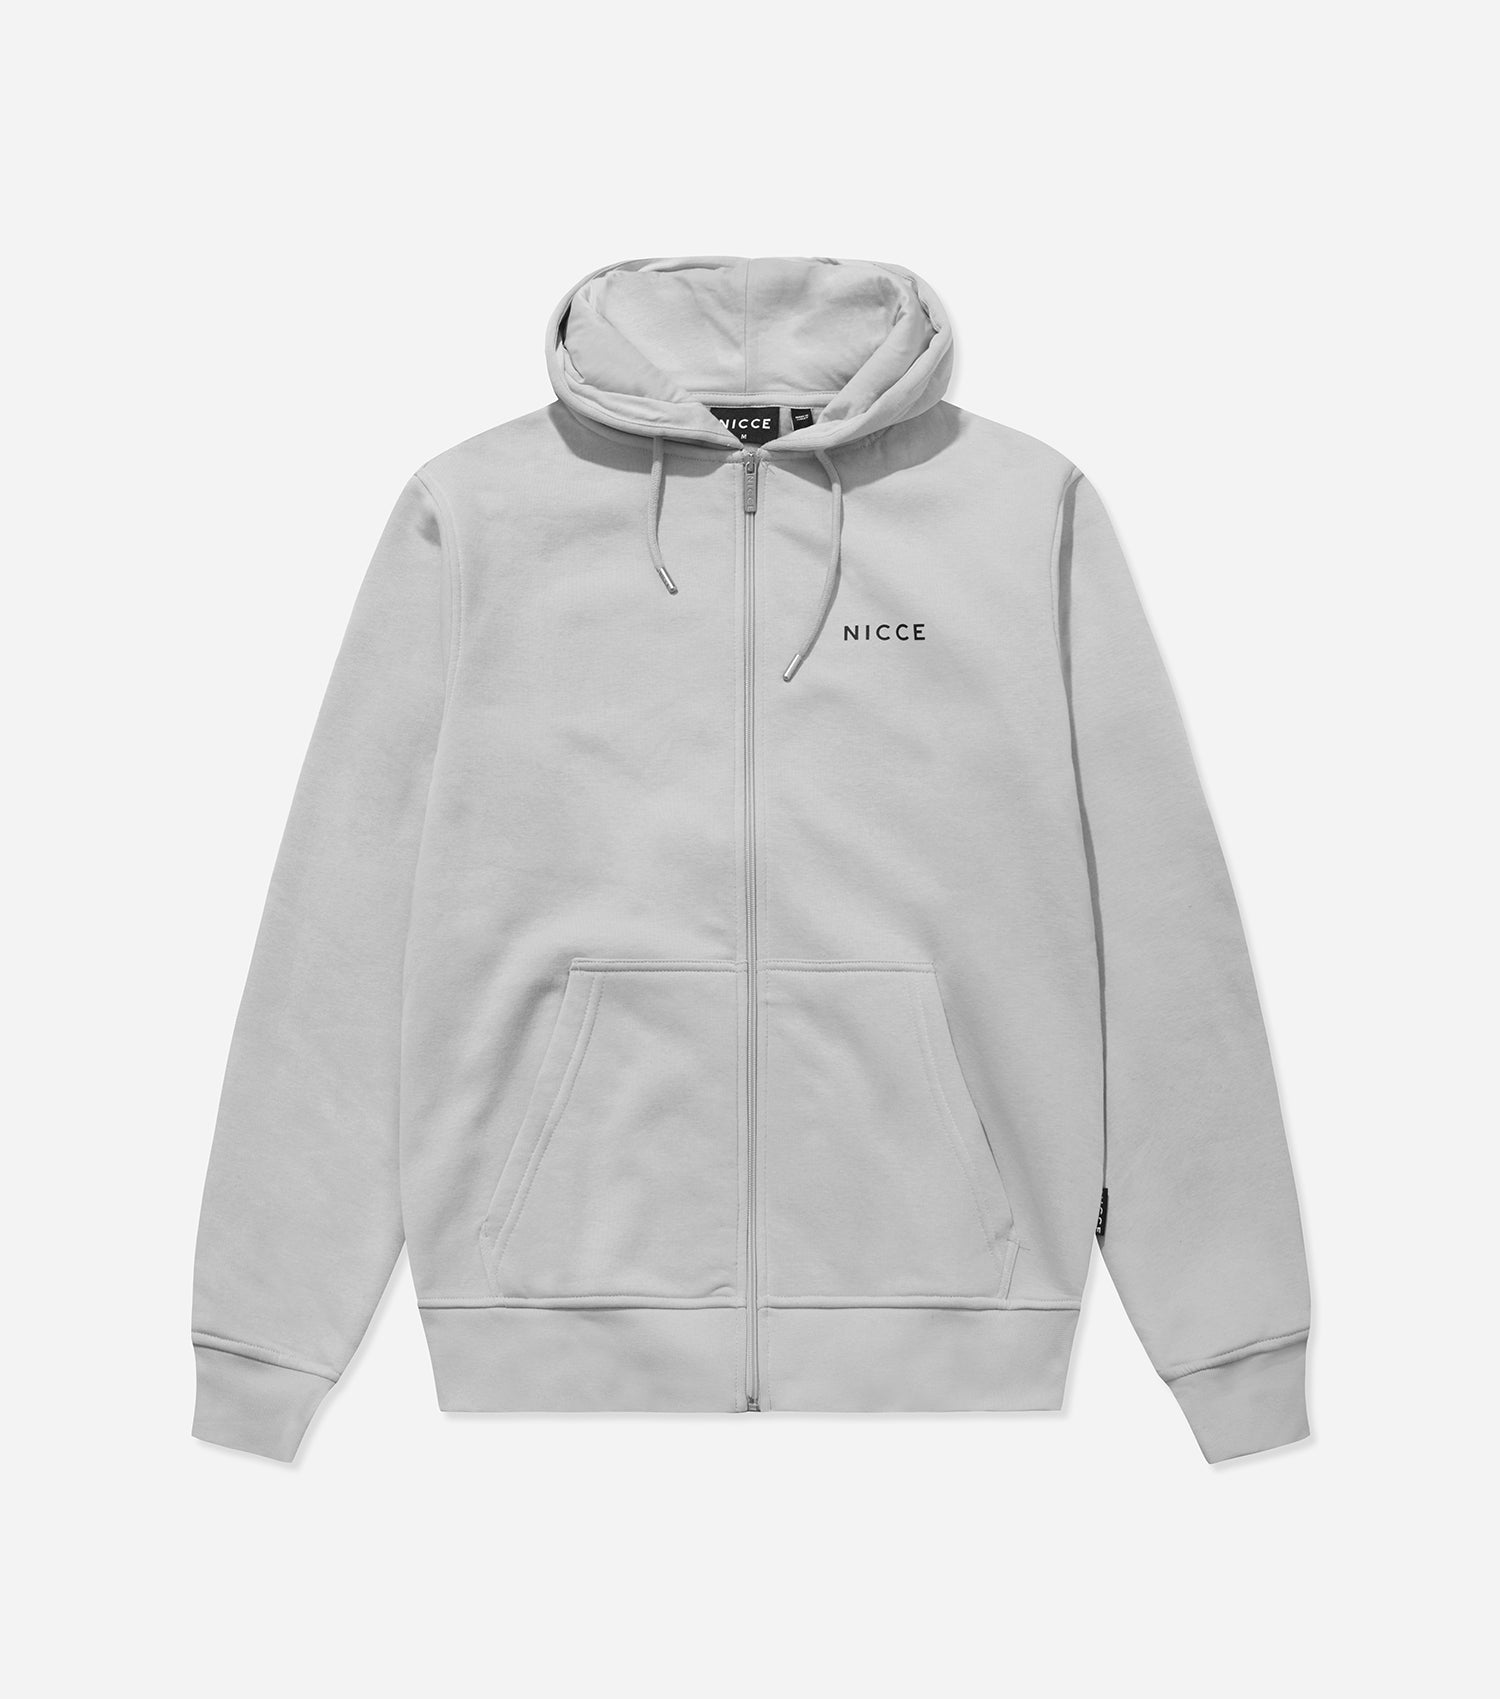 NICCE Mens Zip Thru Hood | Stone Grey, Hoodies